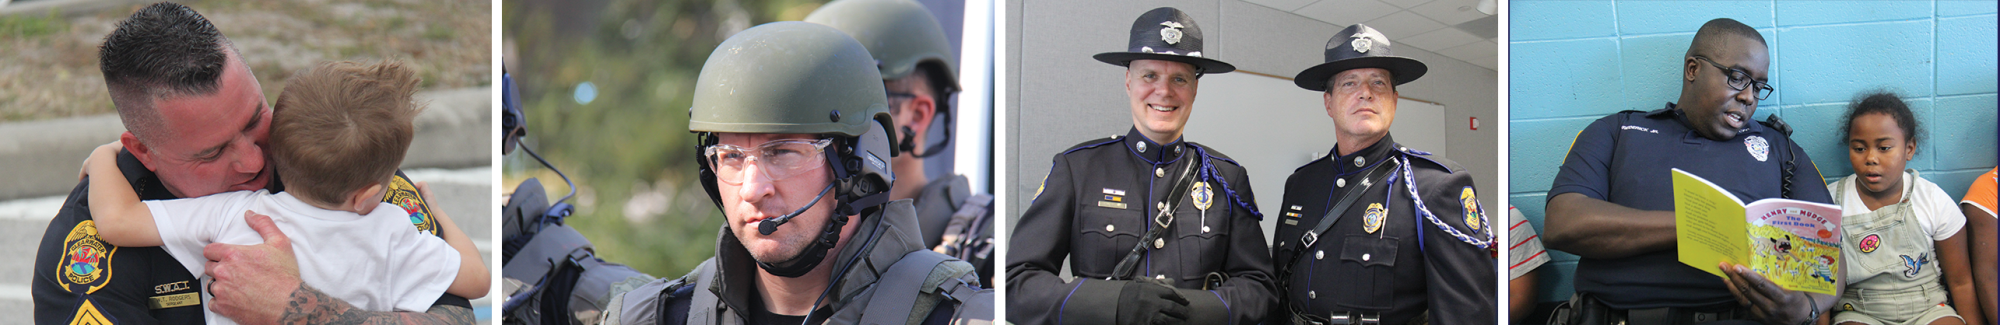 Photo of Police Officer hugging small boy, photo of SWAT member in full green armor and a headset looking out into the distance, photo of two officers dressed in honor guard attire with large hats smiling, photo of police officer reading to young boy.